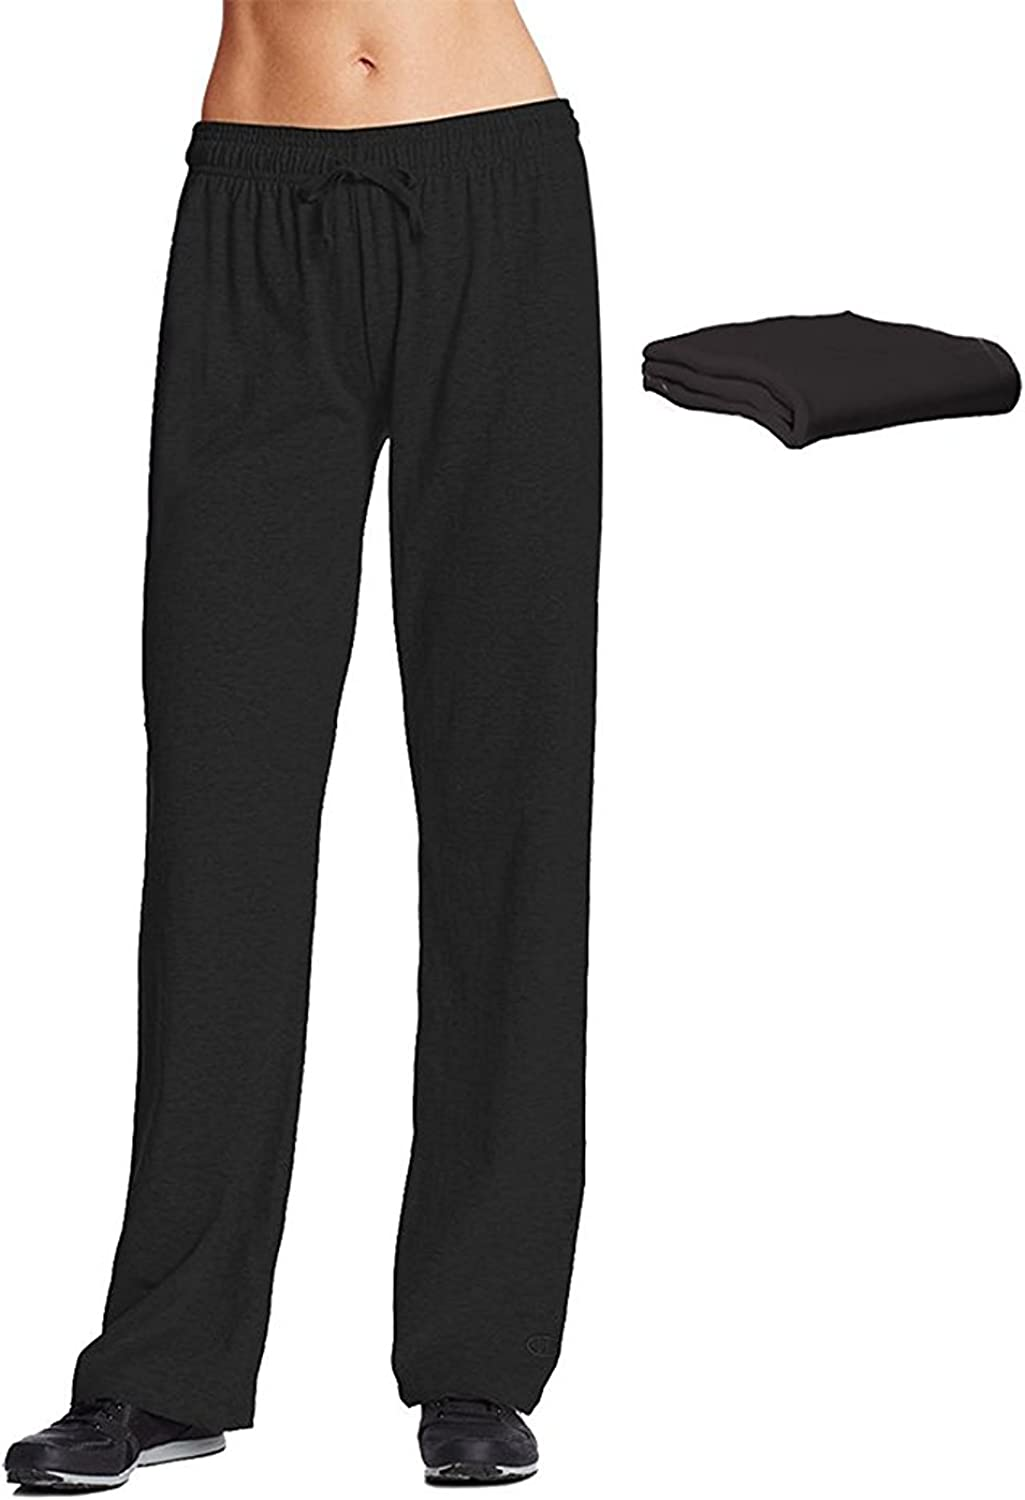 Champion M7421 Low price Womens Jersey Pant Pack Manufacturer regenerated product 2 Black